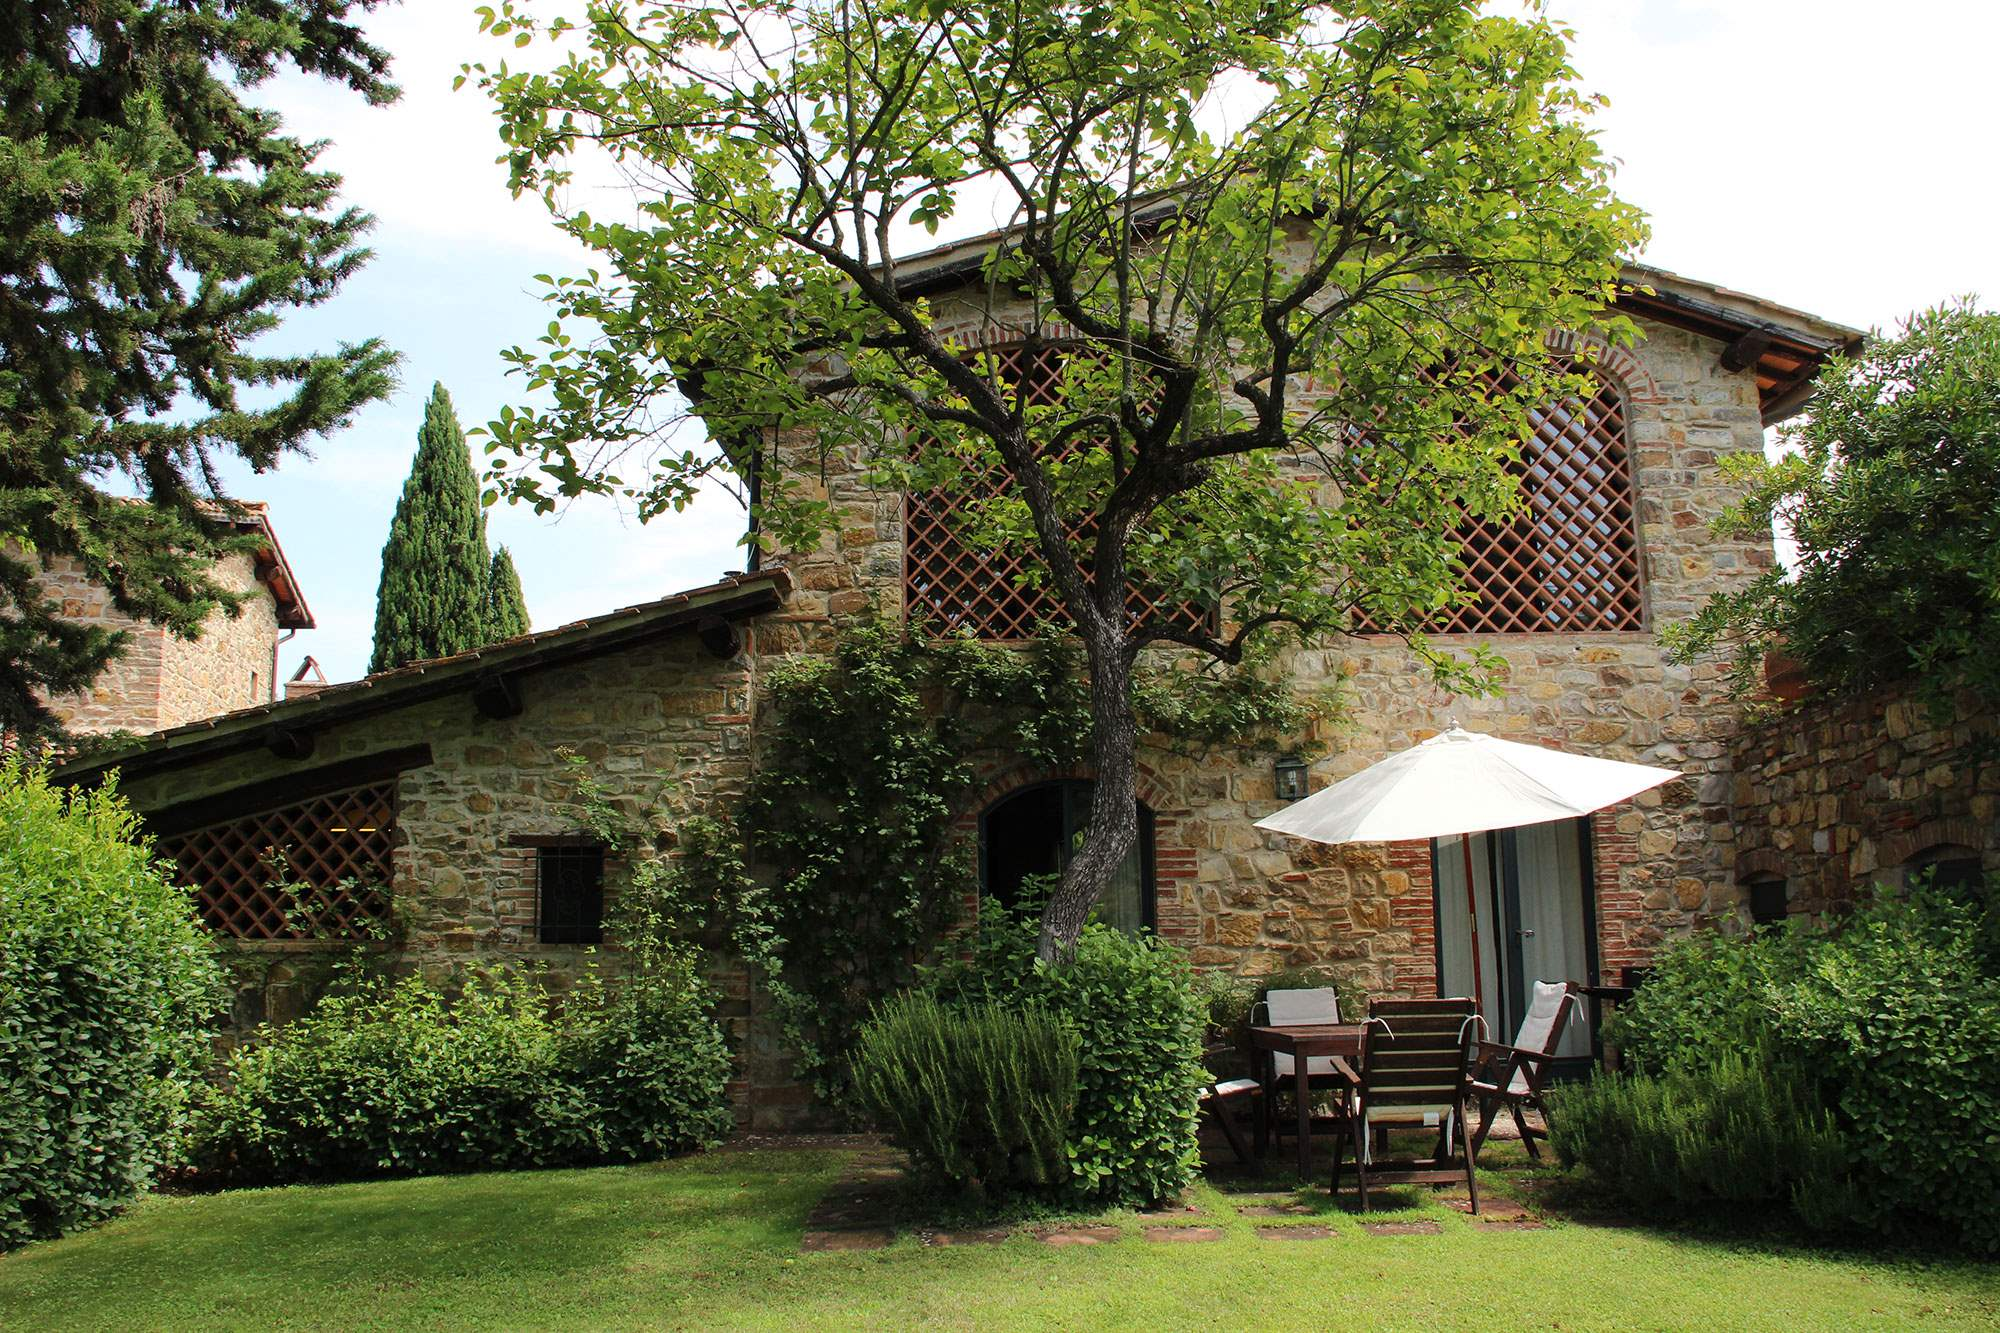 Casas Ferruzzi, 8 bedroom apartment in Chianti & Countryside, Tuscany Photo #11